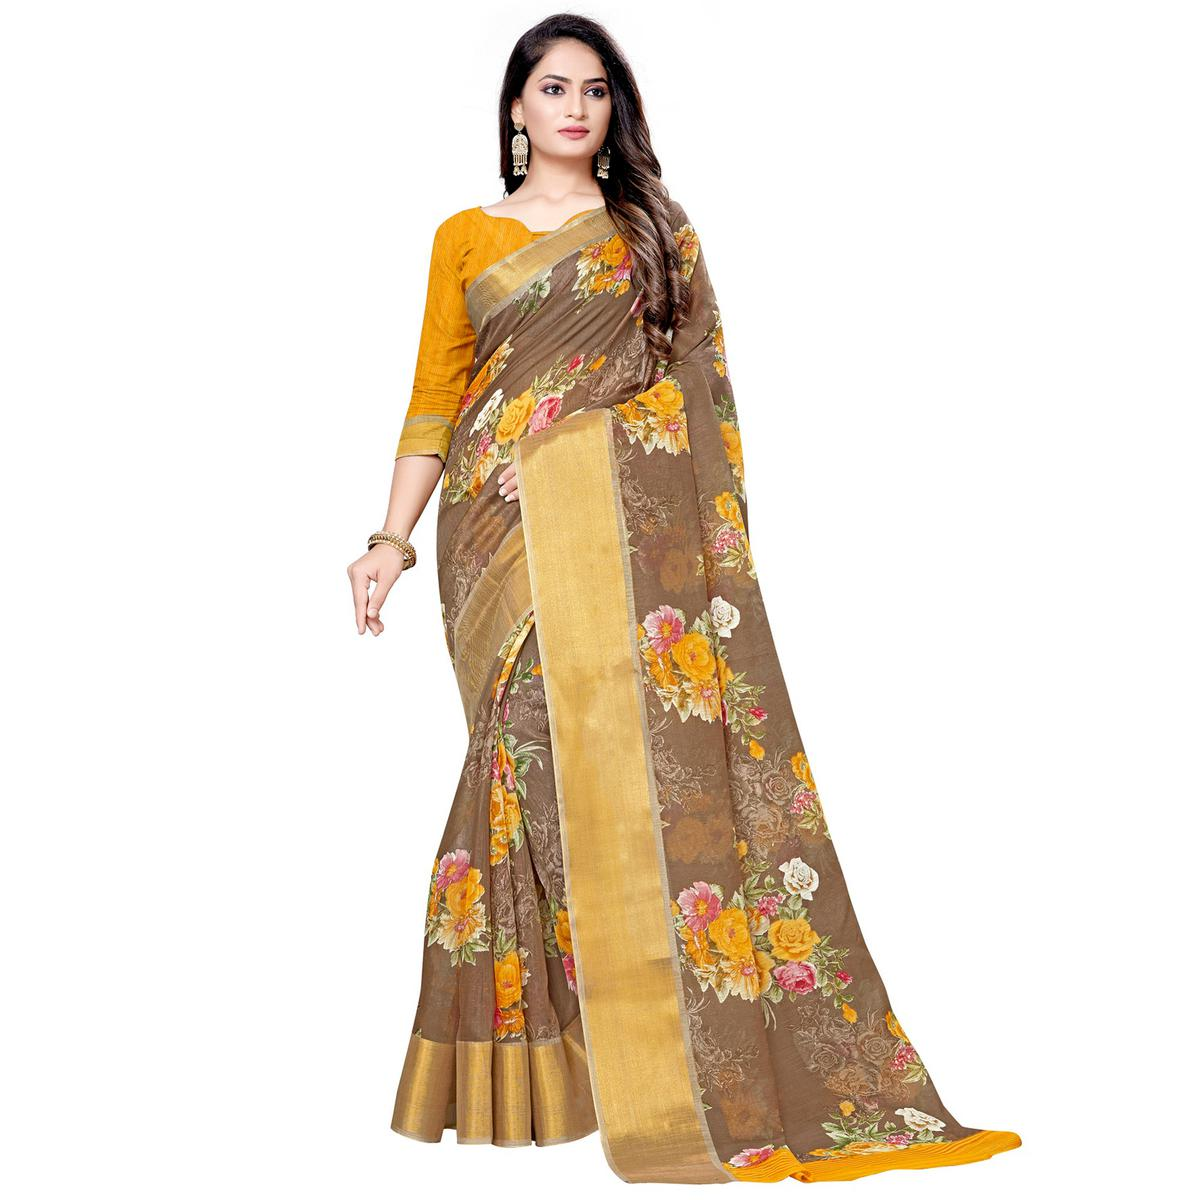 Eye-catching Brown Colored Casual Floral Printed Linen Saree